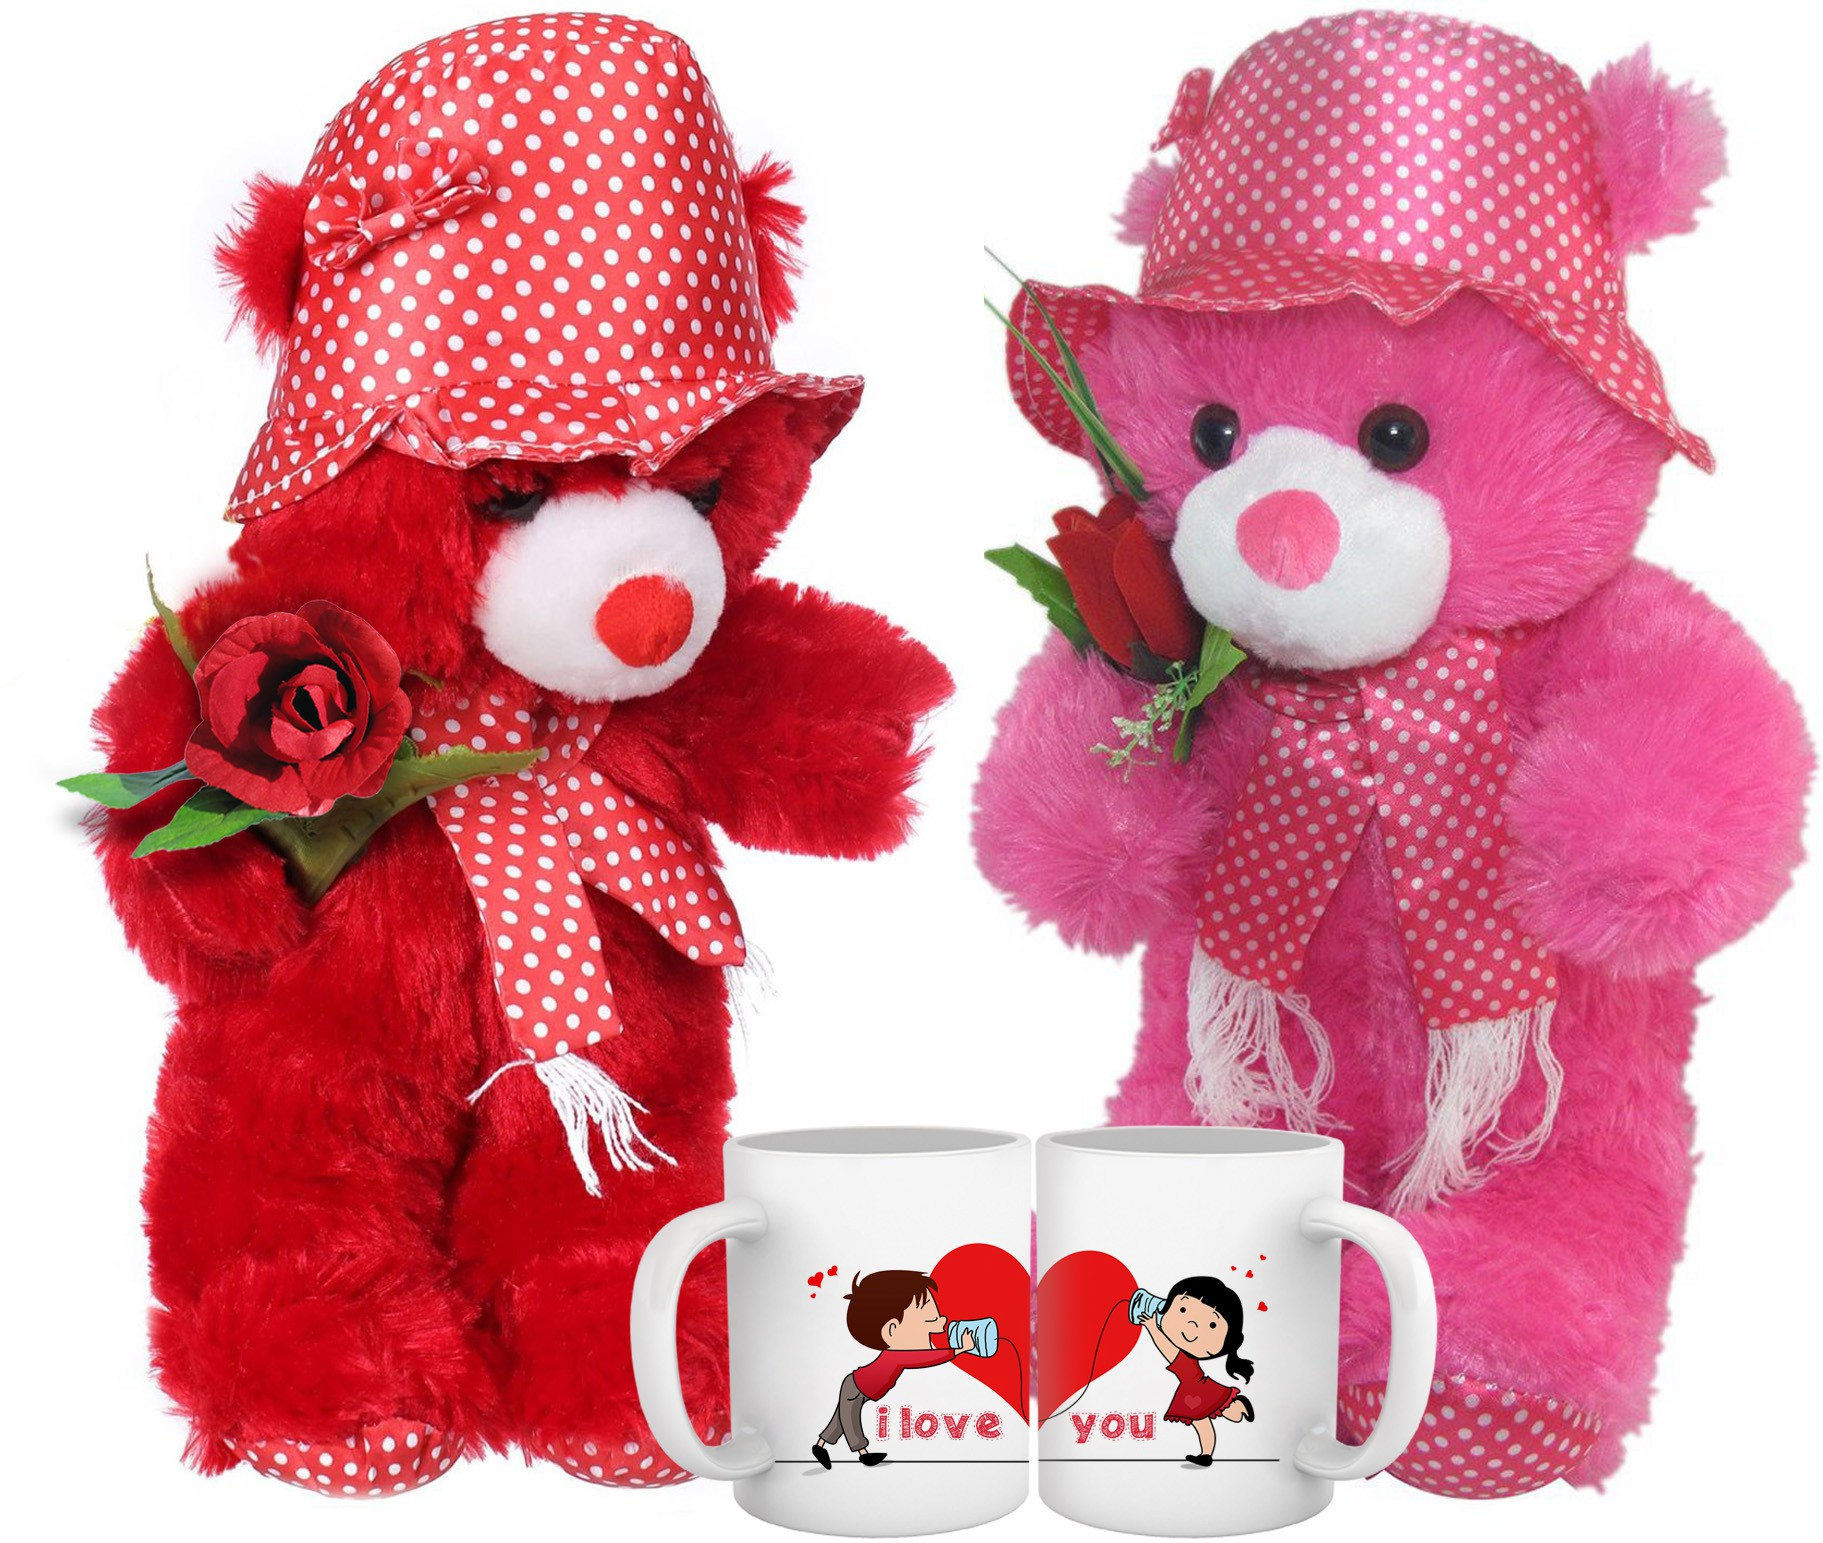 Deals | Roses & more Valentine Gifts for Her